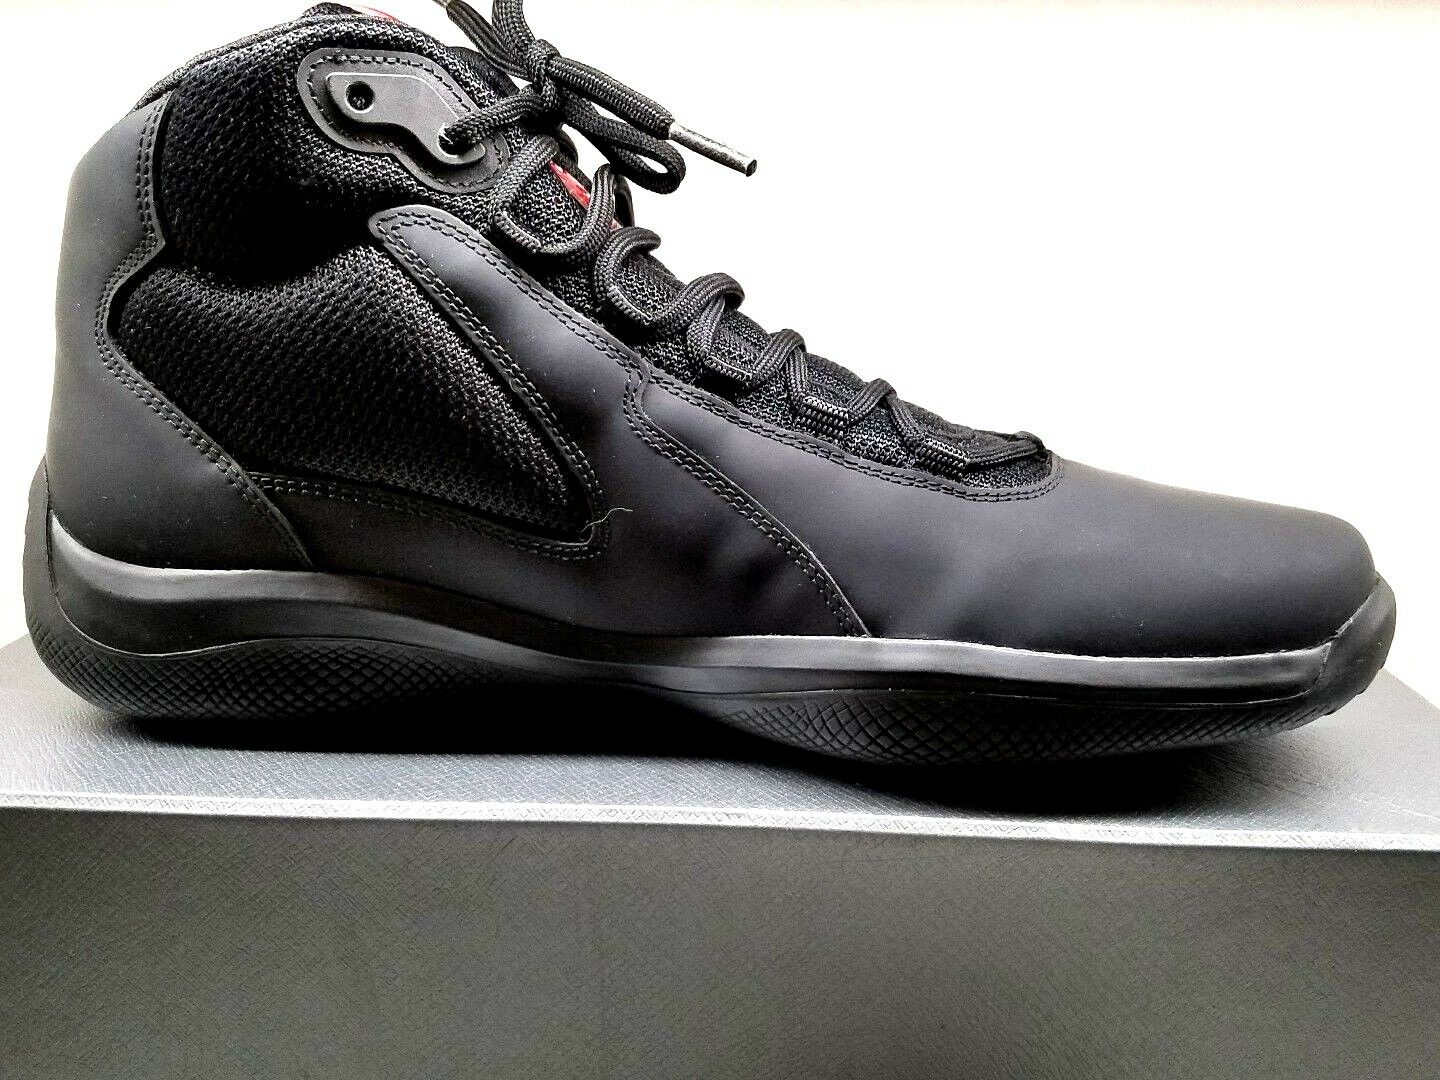 NEW Men's Prada nero Matte America's Cup Leather High Top scarpe da ginnastica  US 9